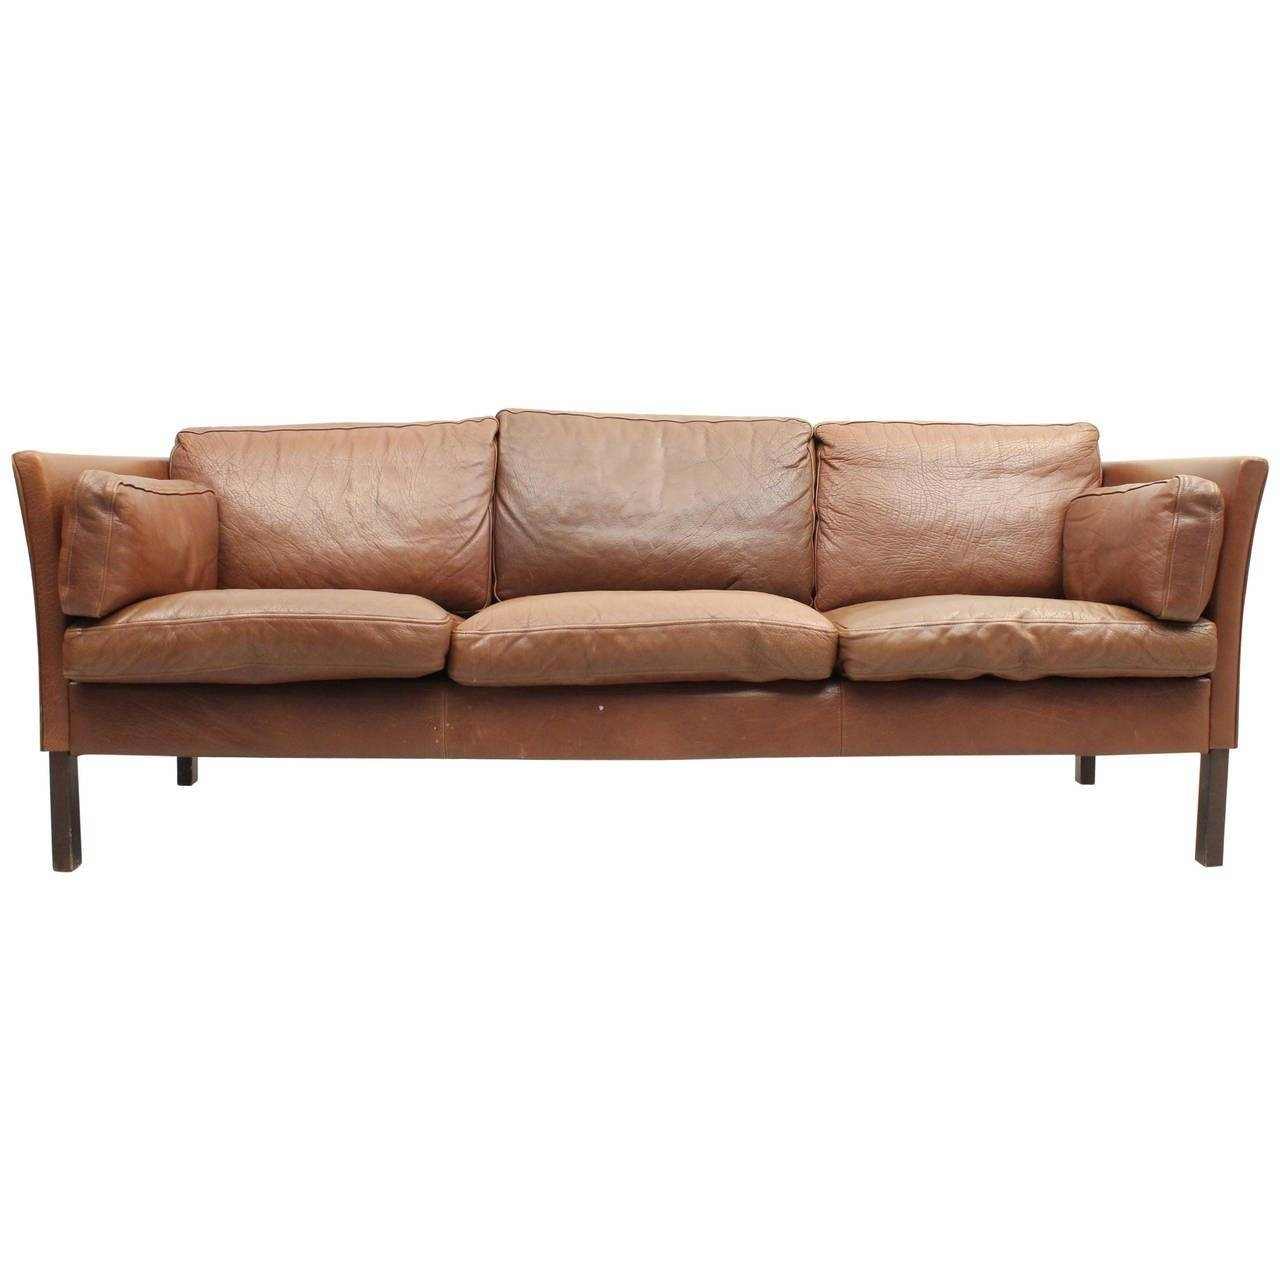 Danish Mid Century Modern Leather Sofa At 1Stdibs with Danish Leather Sofas (Image 10 of 15)